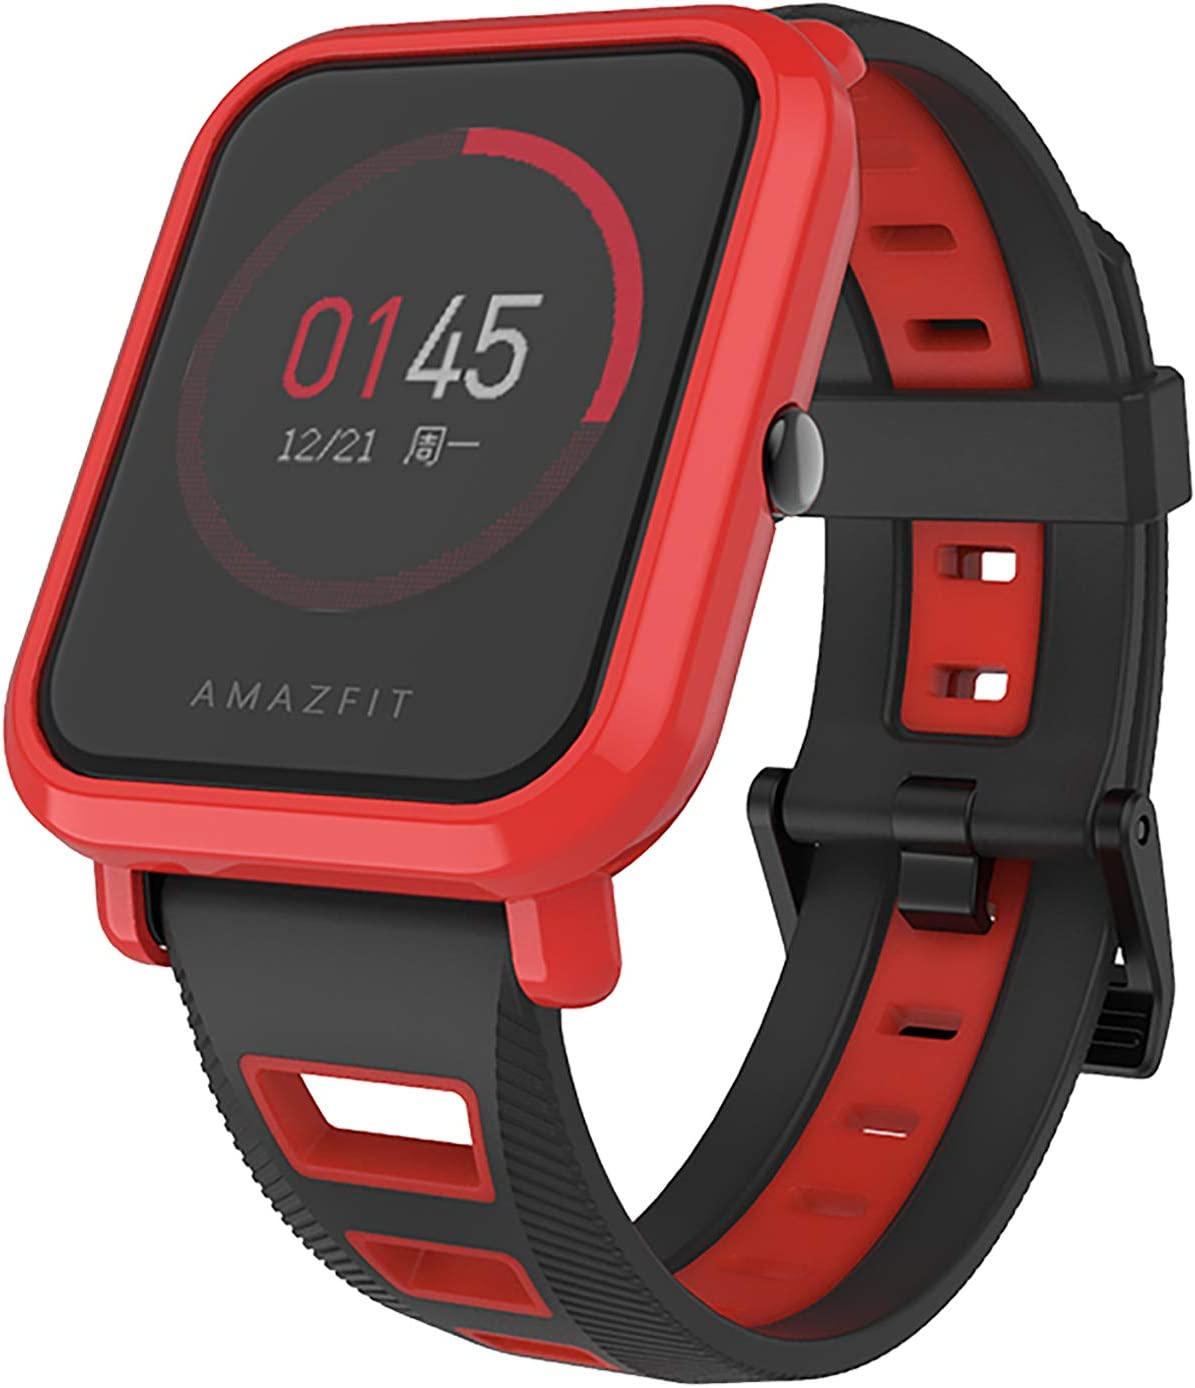 SenMore Correa para Xiaomi Amazfit Bip Younth - 20mm Silicona Pulsera Impermeable Correas de Repuesto para Galaxy Watch 42mm, Gear S2 Classic, Huawei Watch 2, Huami Amazfit Bip (20MM, 1PCS Blackred)